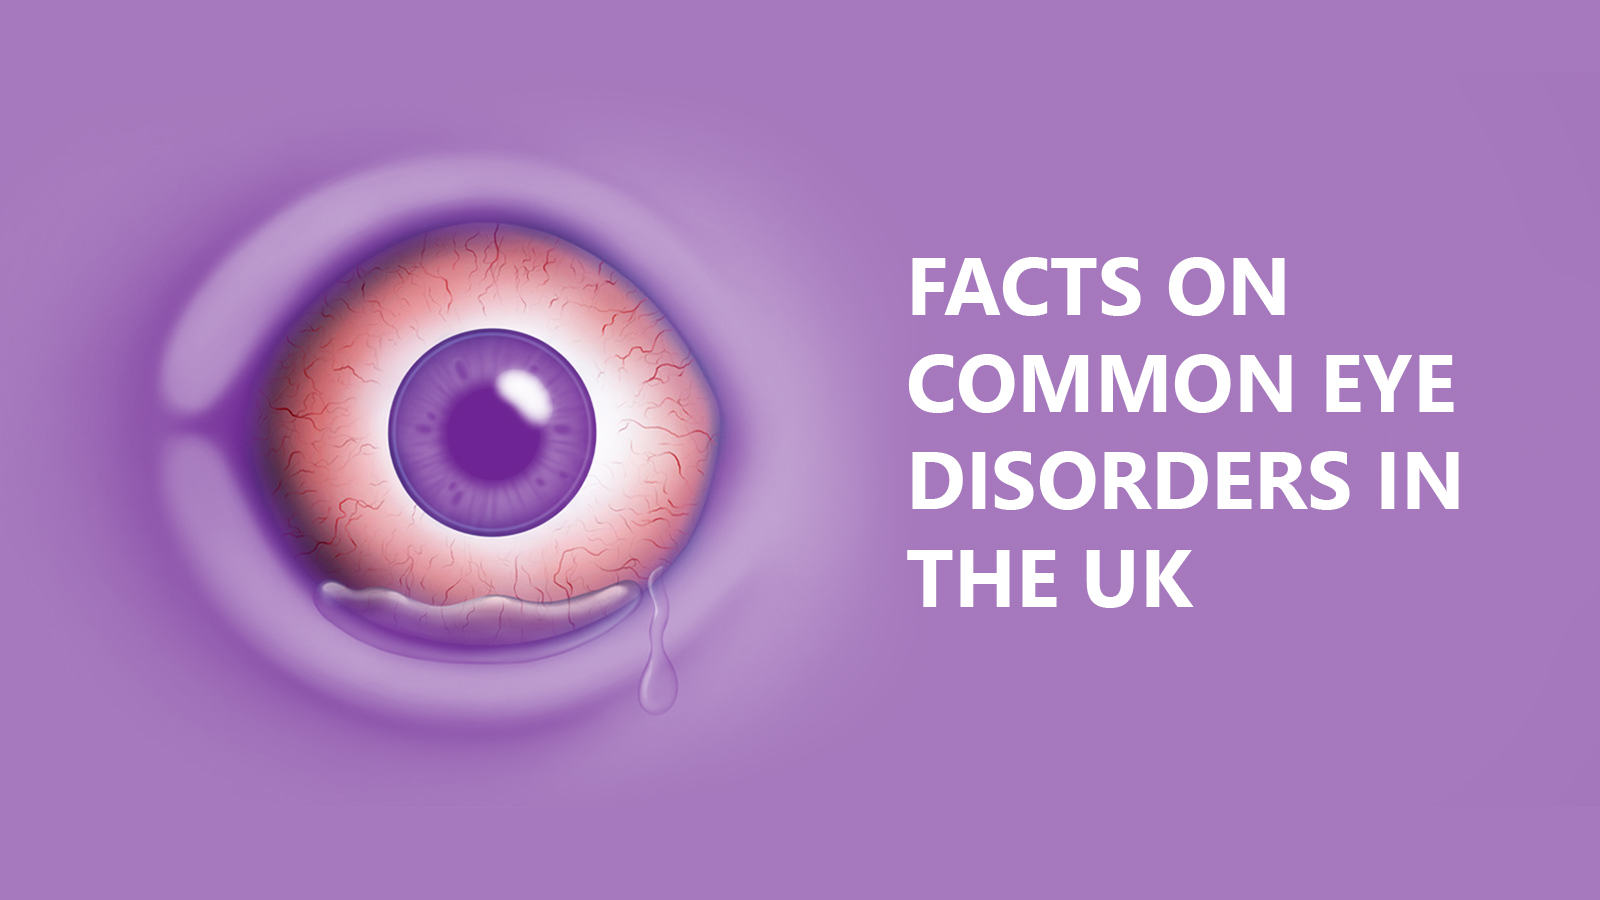 7 Facts on common eye disorders in the UK